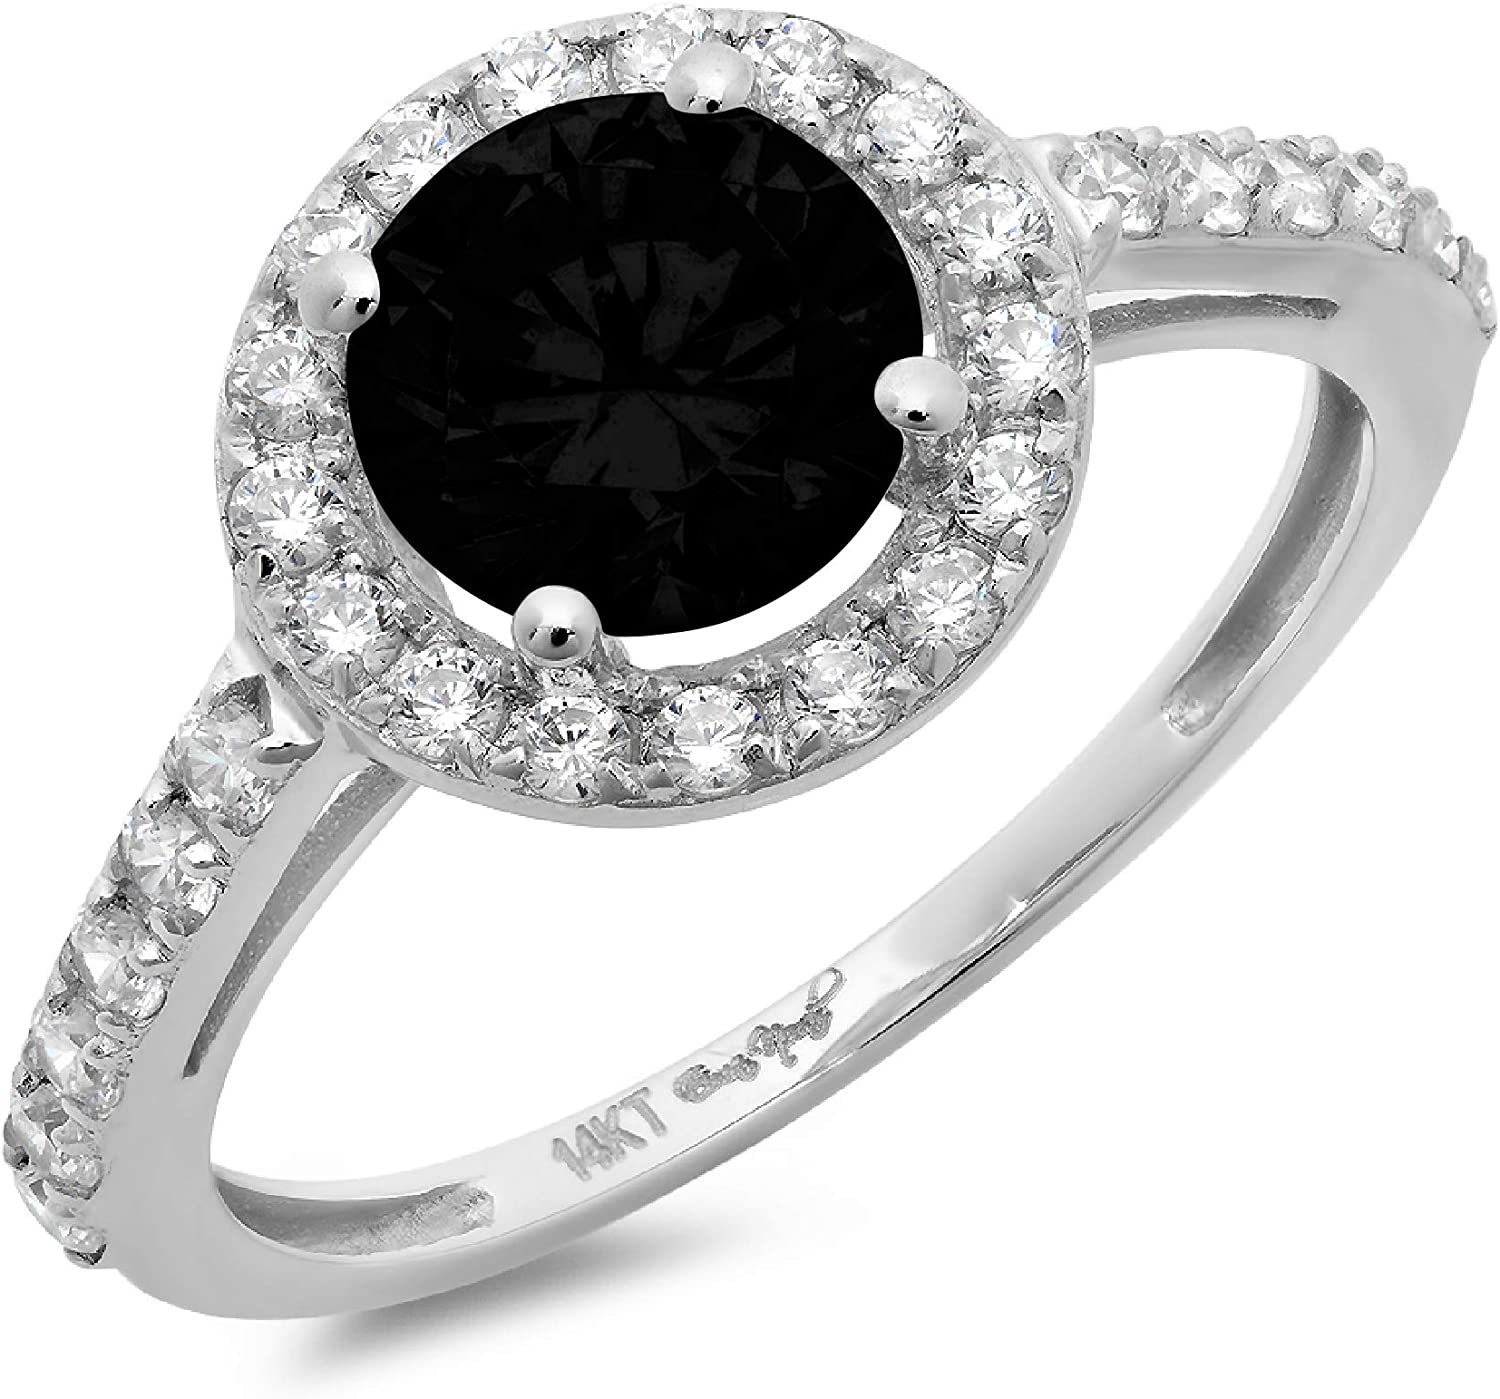 2.34ct Brilliant Round Cut Solitaire Halo Flawless Natural Black Onyx Gemstone Ideal VVS1 Engagement Promise Statement Anniversary Bridal Wedding Accent Designer Ring Solid 14k White Gold